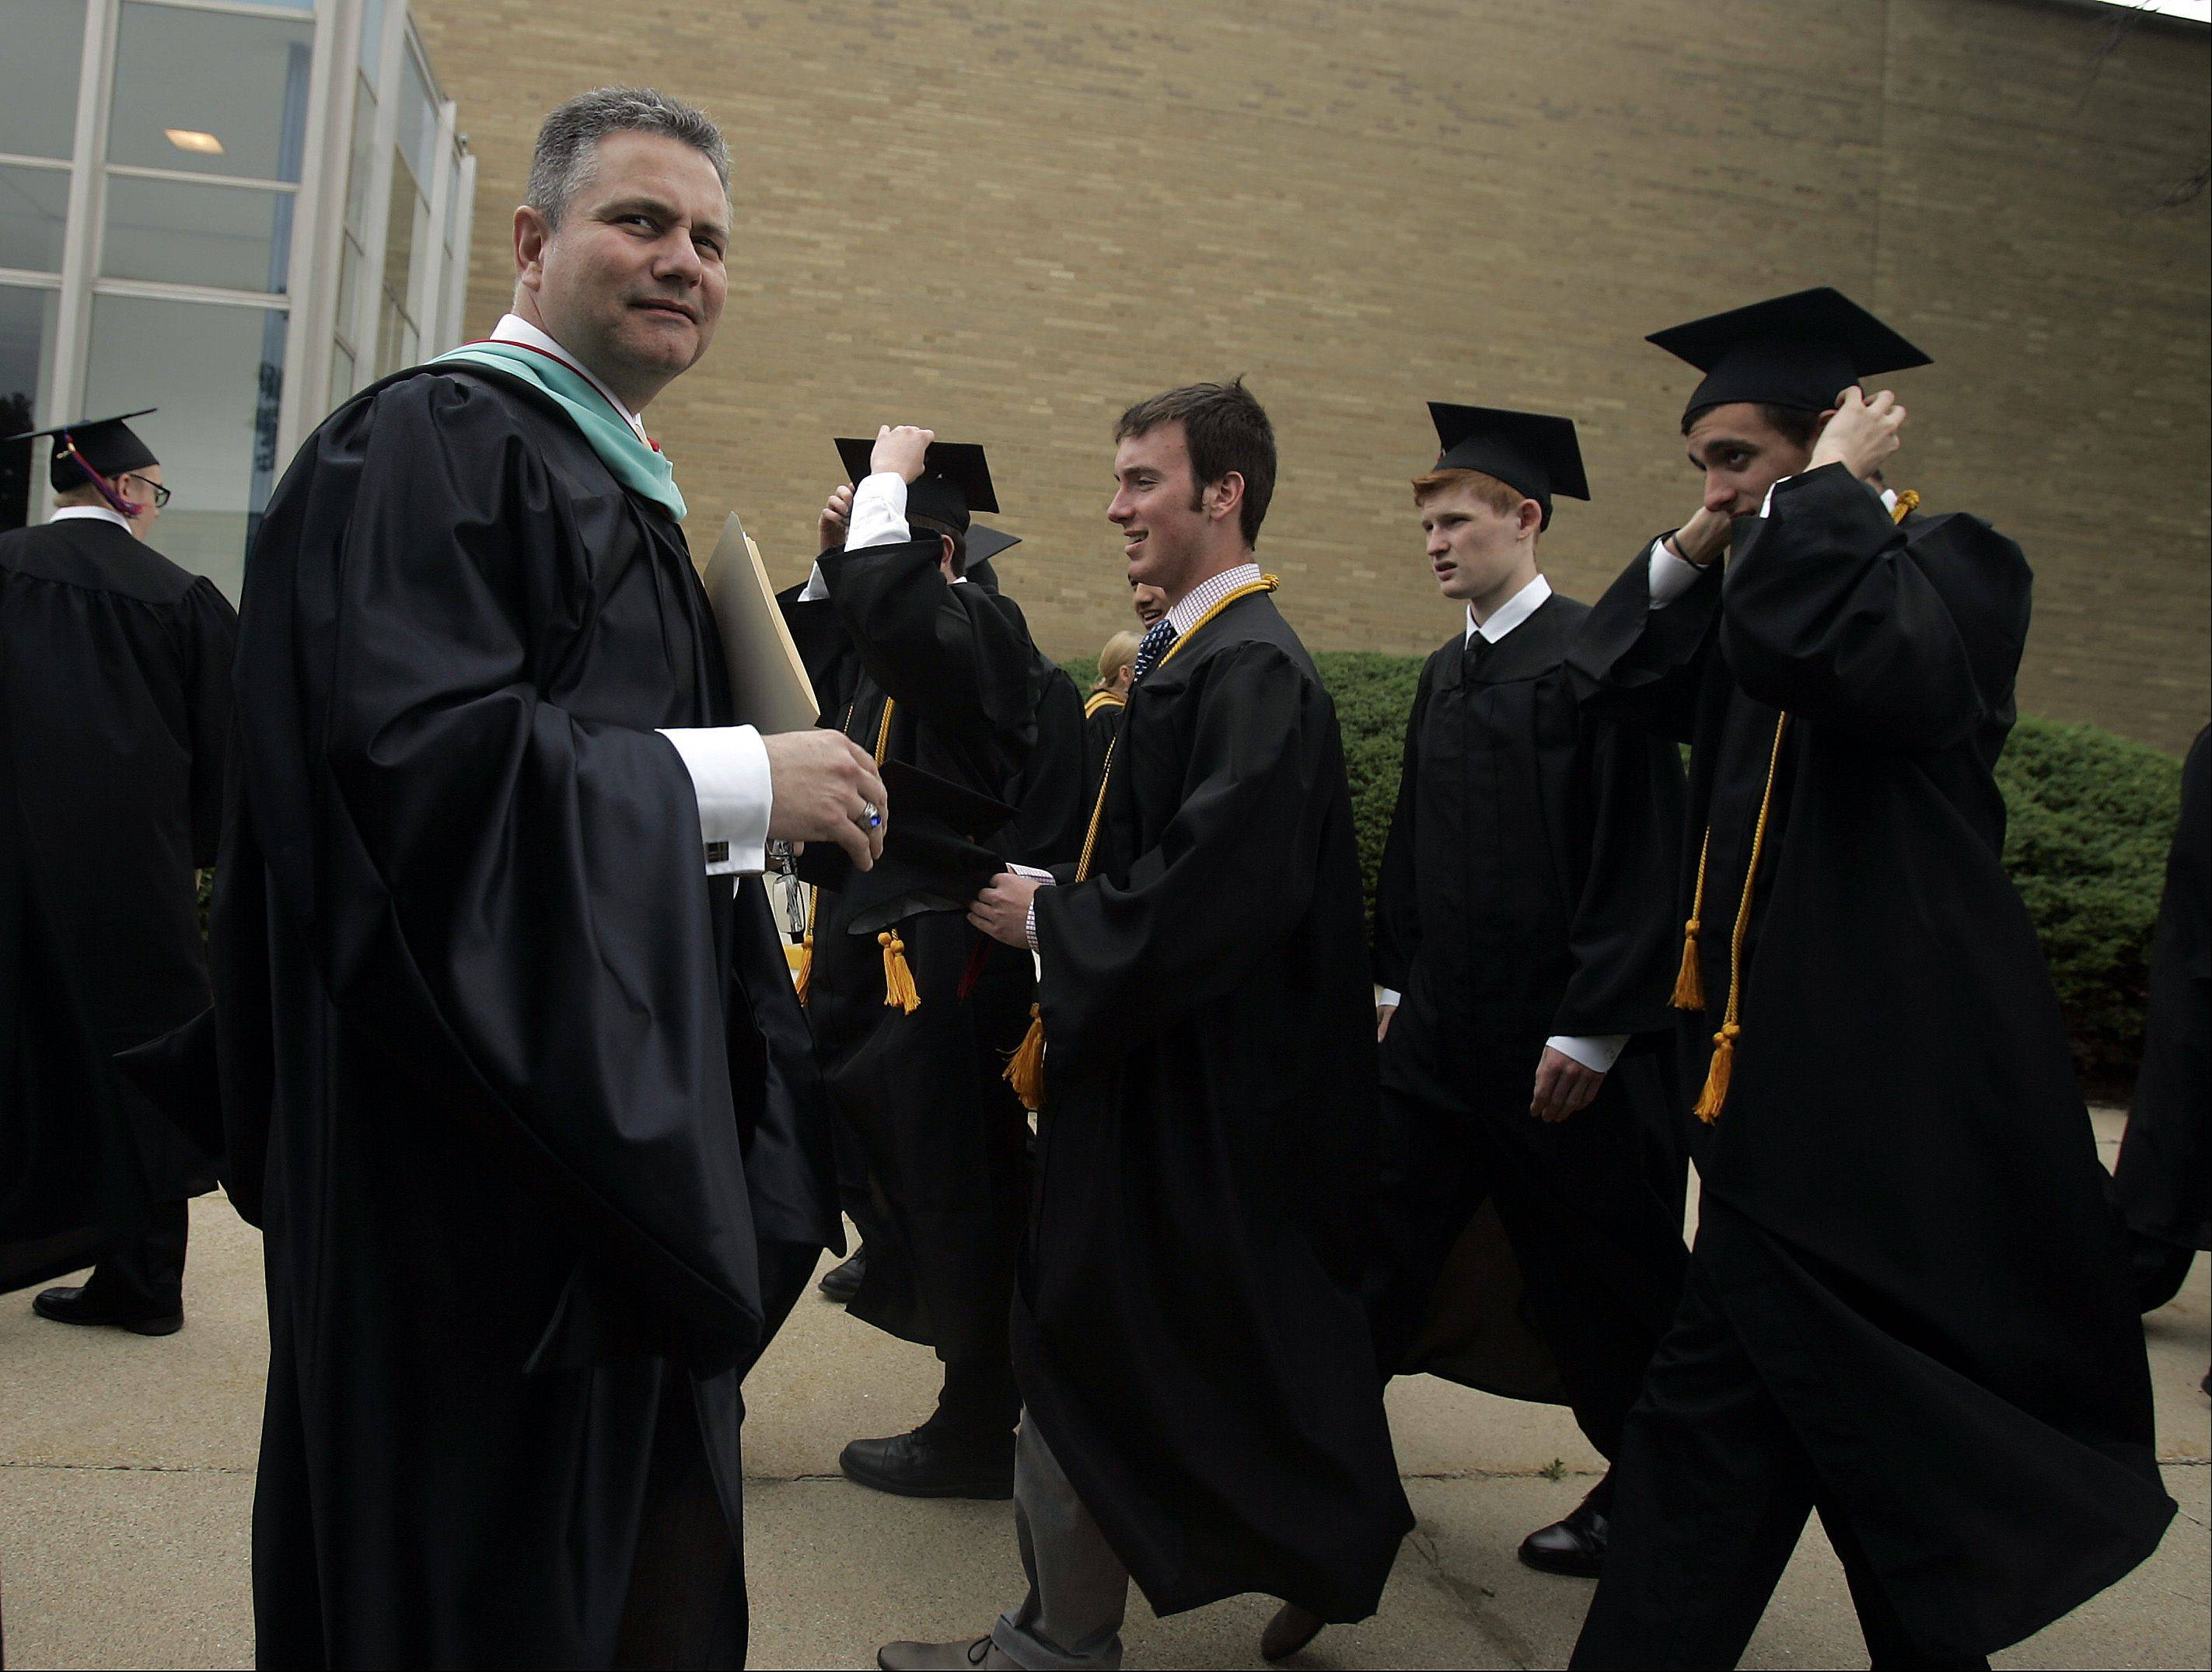 Images from the Marmion Academy commencement ceremony Sunday, May 26, 2013 in Aurora.